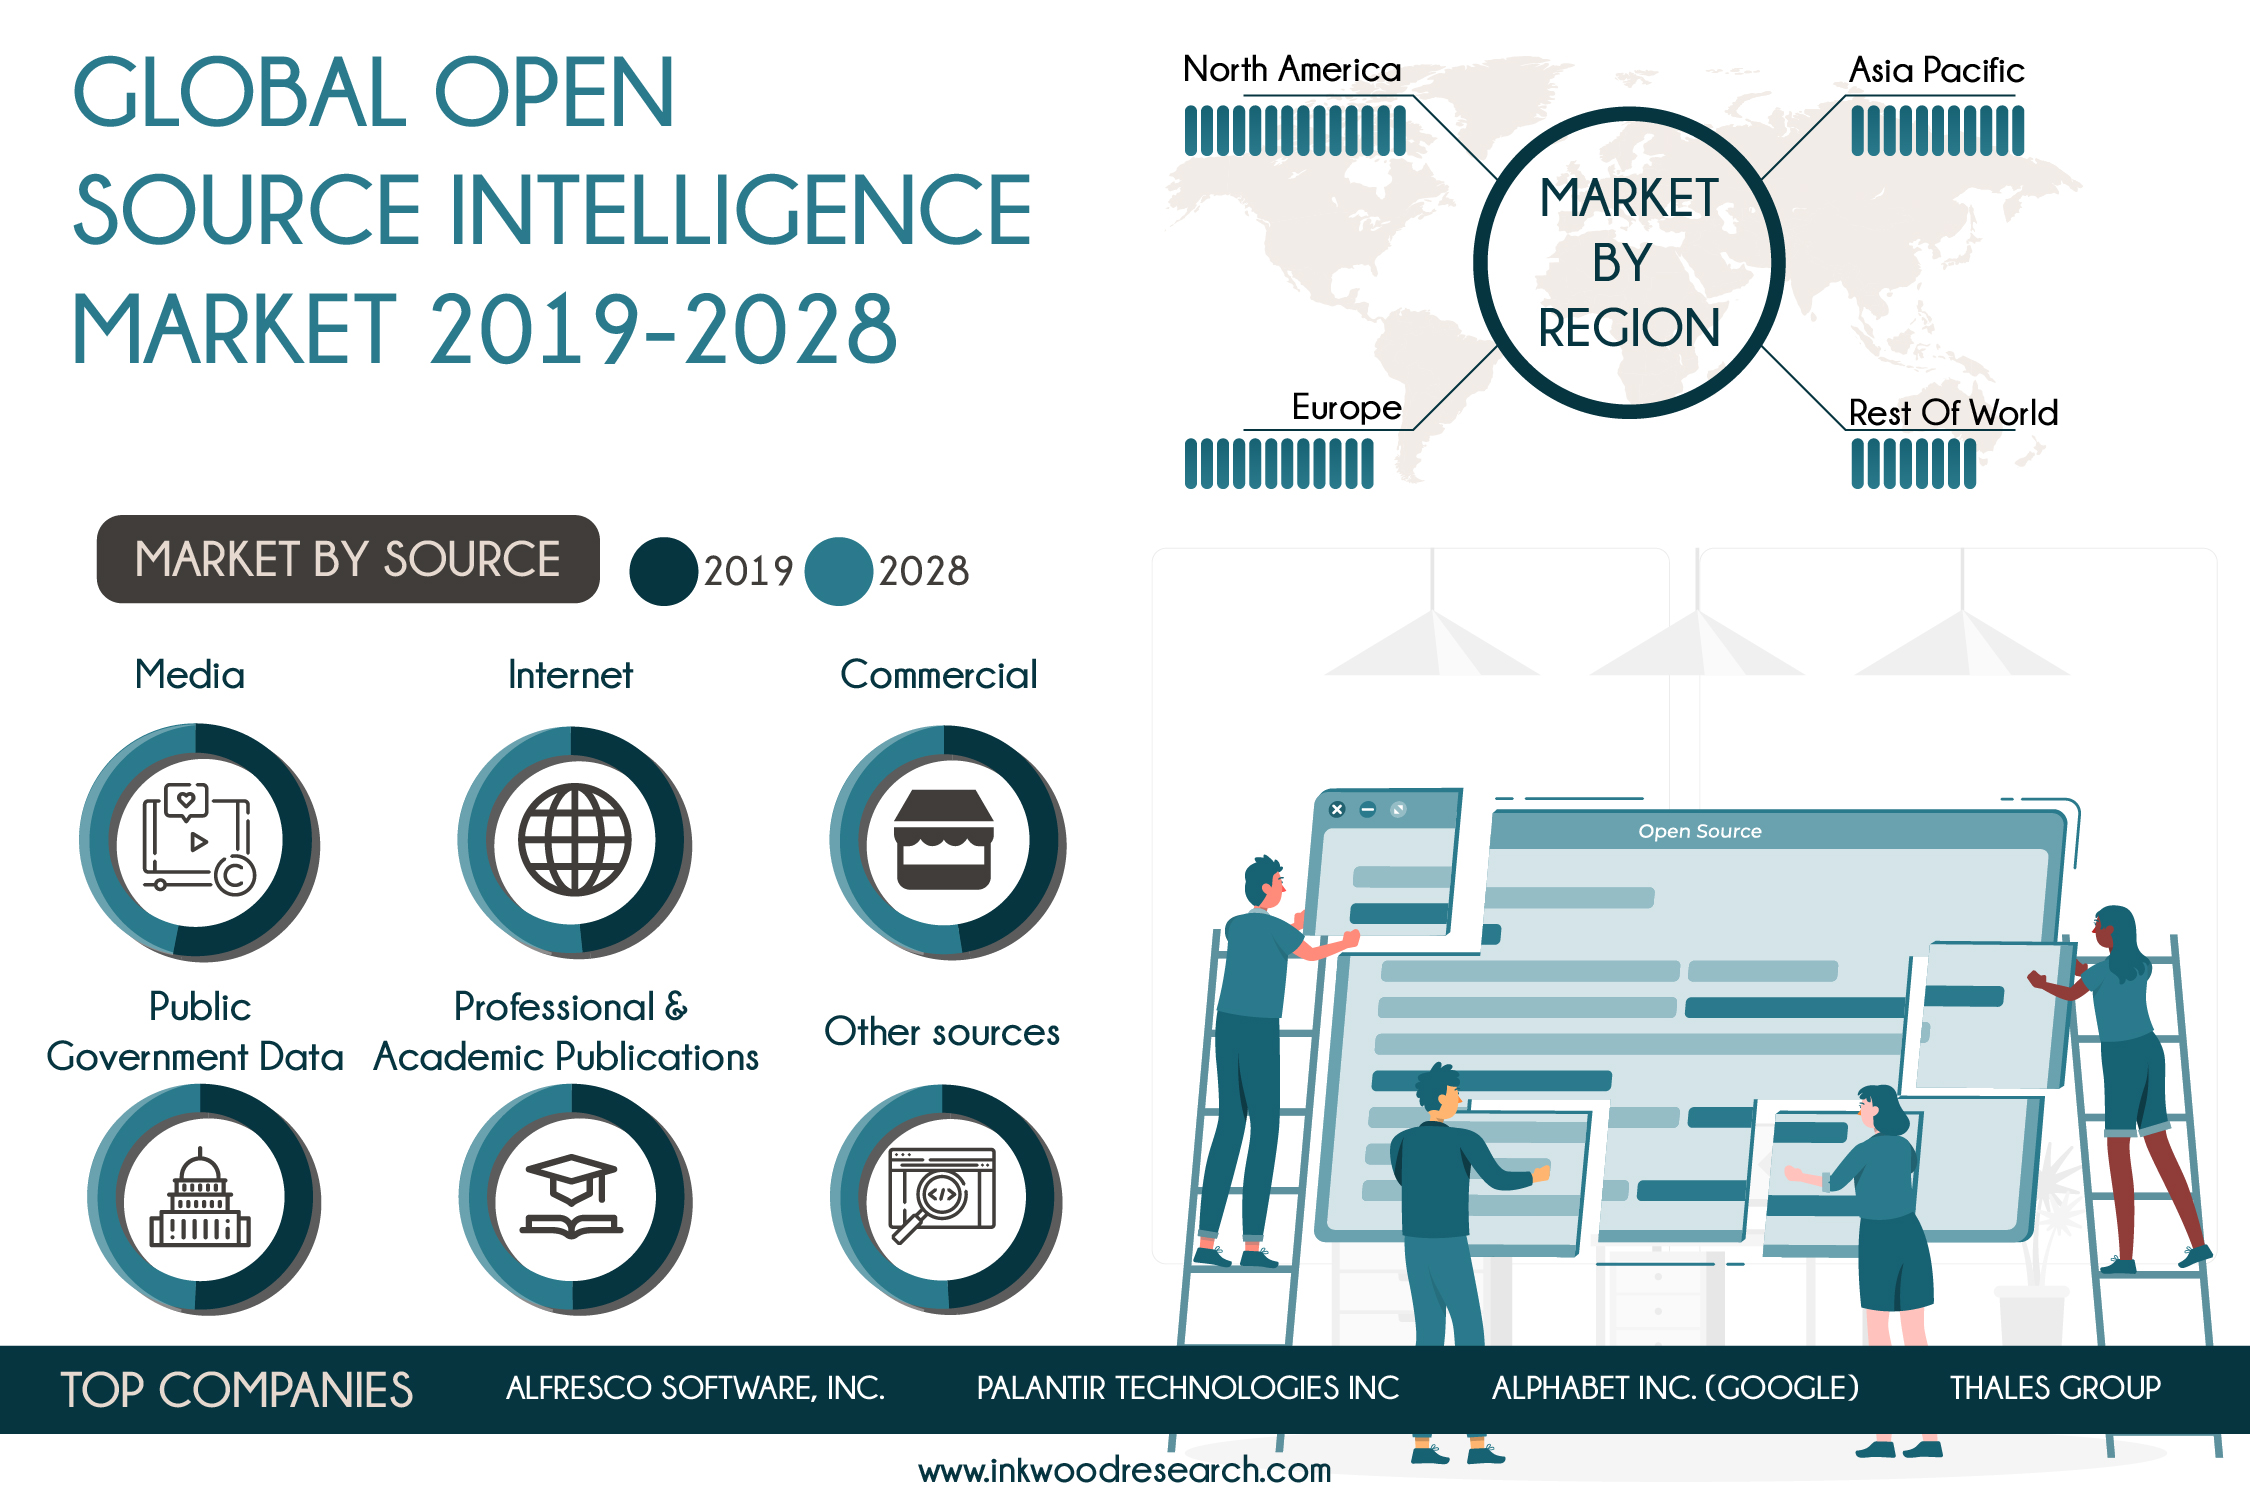 Benefits of Cost-Efficiency to leverage the Global Open Source Intelligence Market